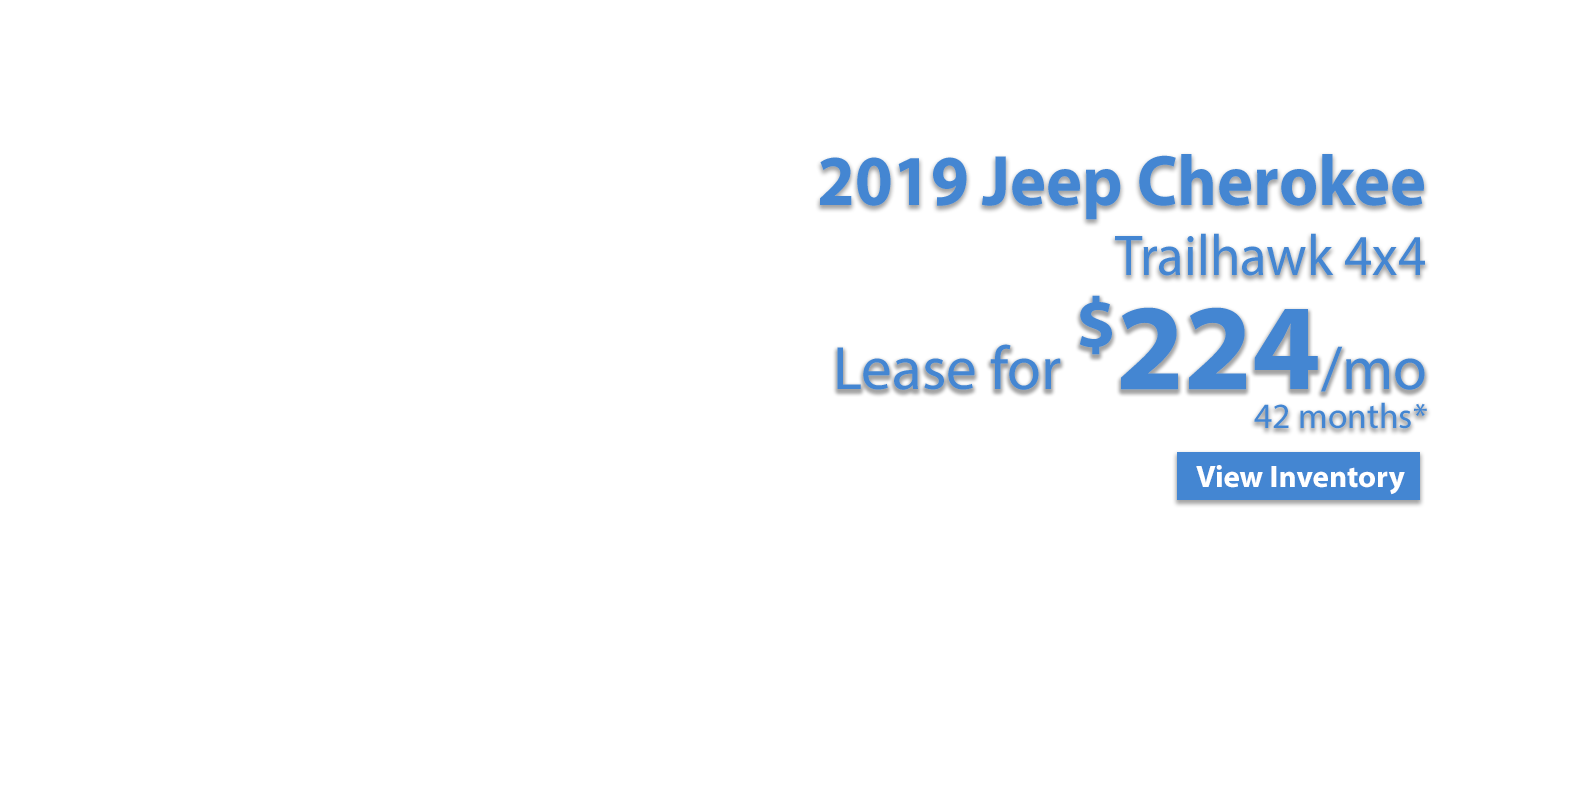 Lease a 2019 Jeep Cherokee Trailhawk 4X4 for $224/mo for 42 months at Larry H. Miller Colorado Chrysler Jeep